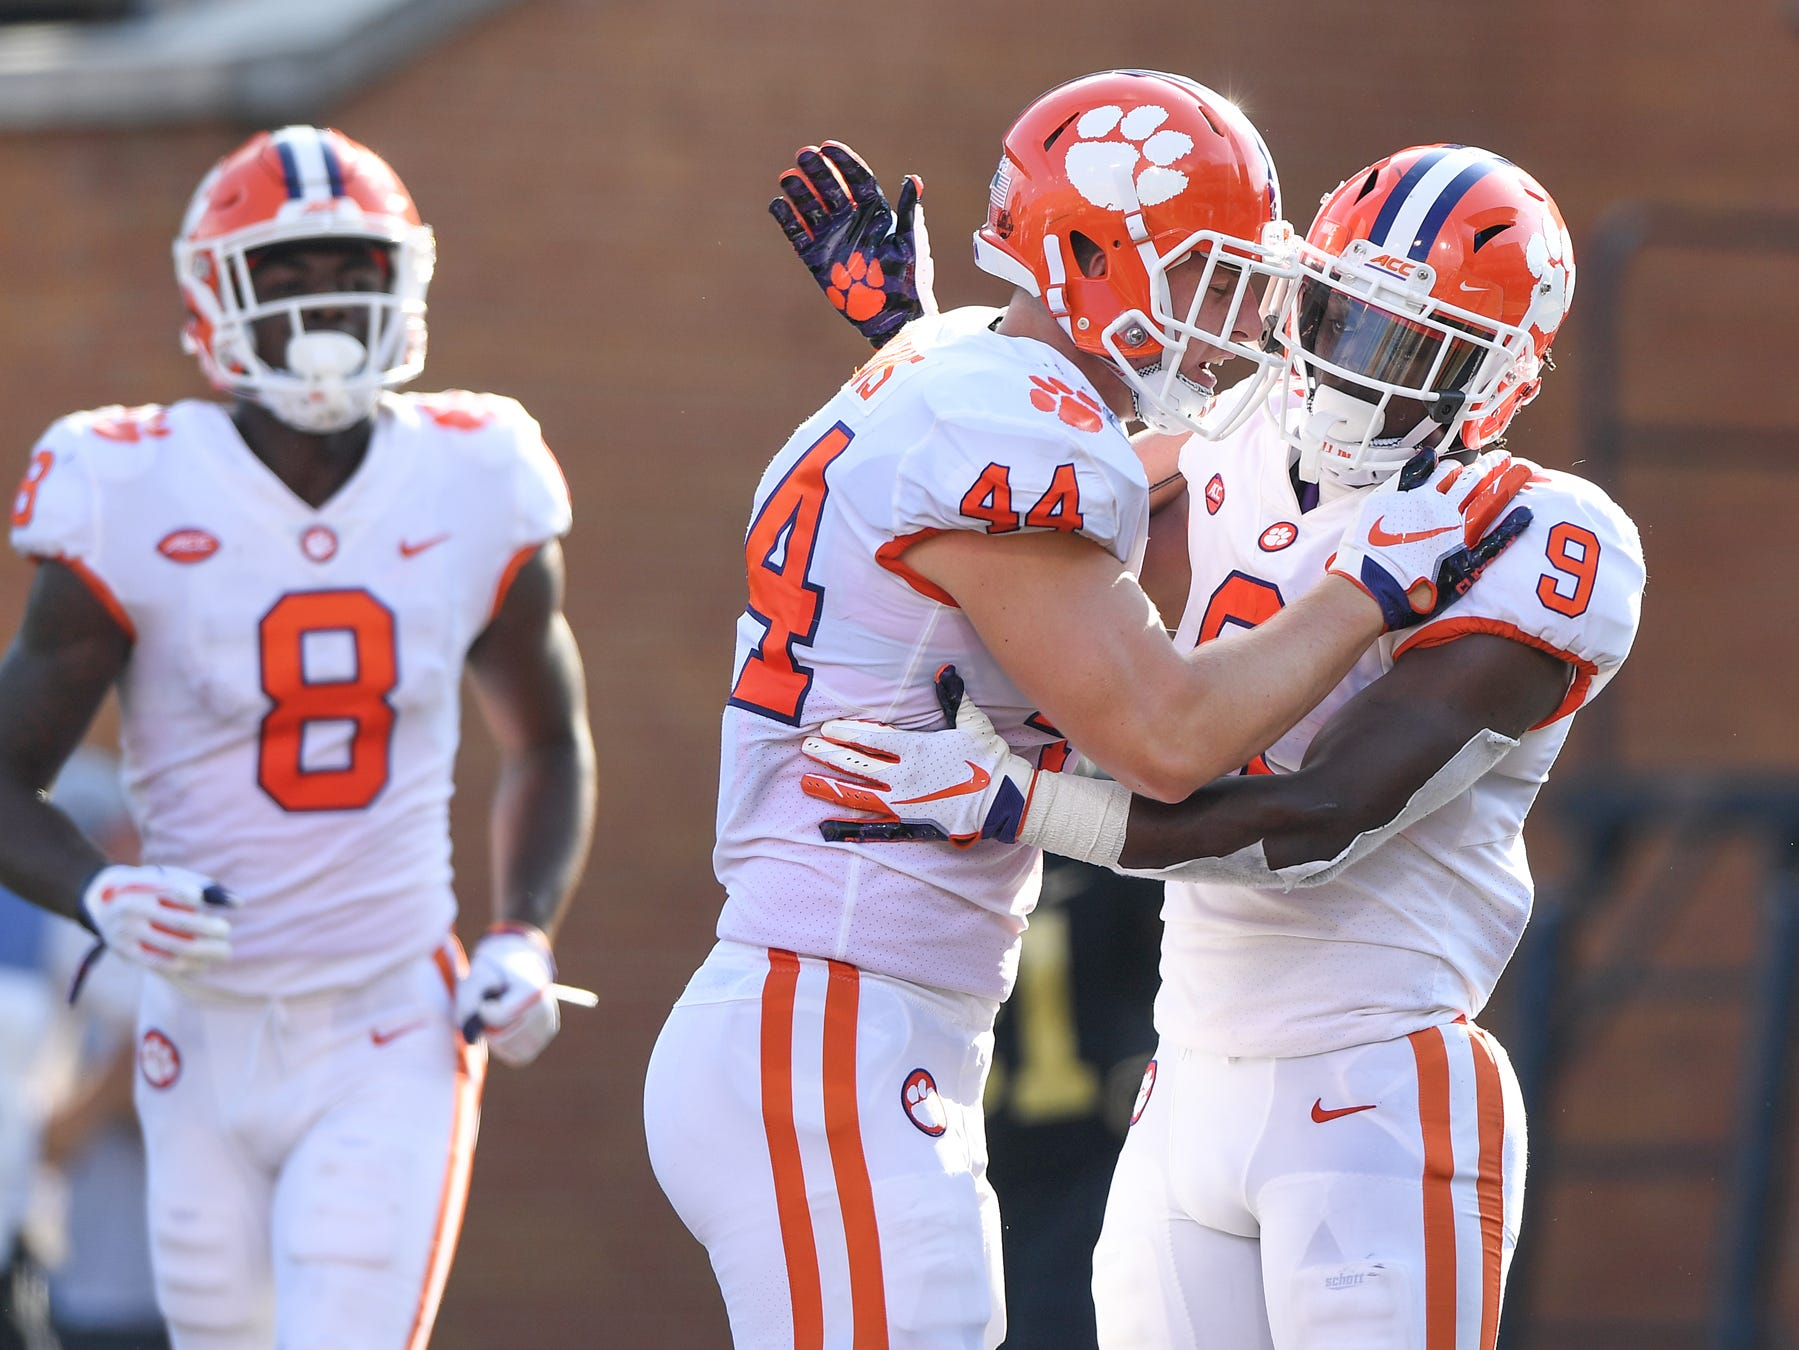 Clemson running back Travis Etienne (9) celebrates with tight end Garrett Williams (44) after scoring against Wake Forest during the 2nd quarter at BB&T Field in Winston Salem, N.C. Saturday, October 6, 2018.